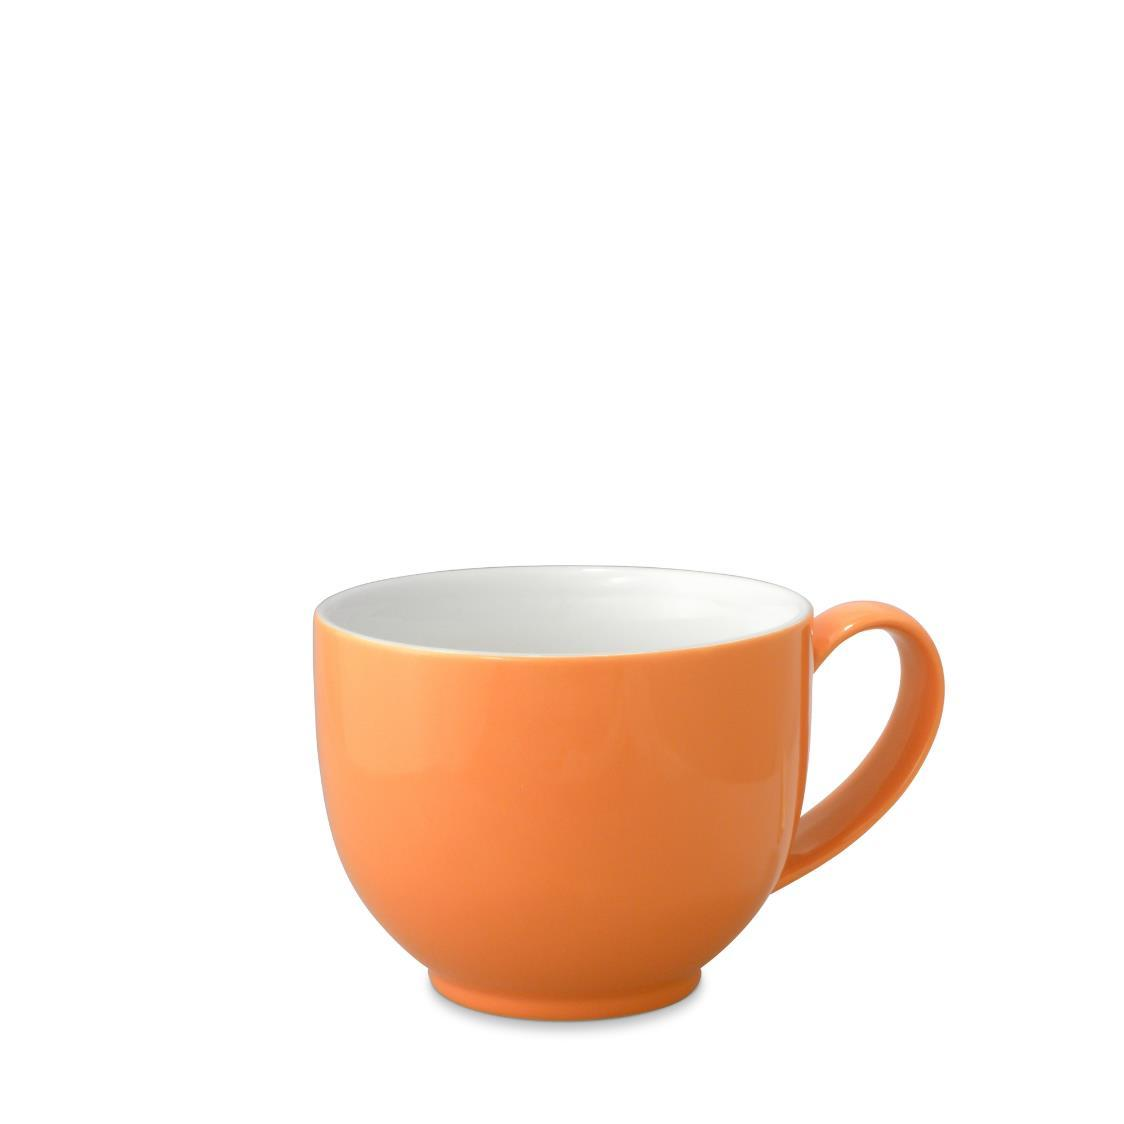 Q Tea Cup with Handle 295ml FL521-CAR